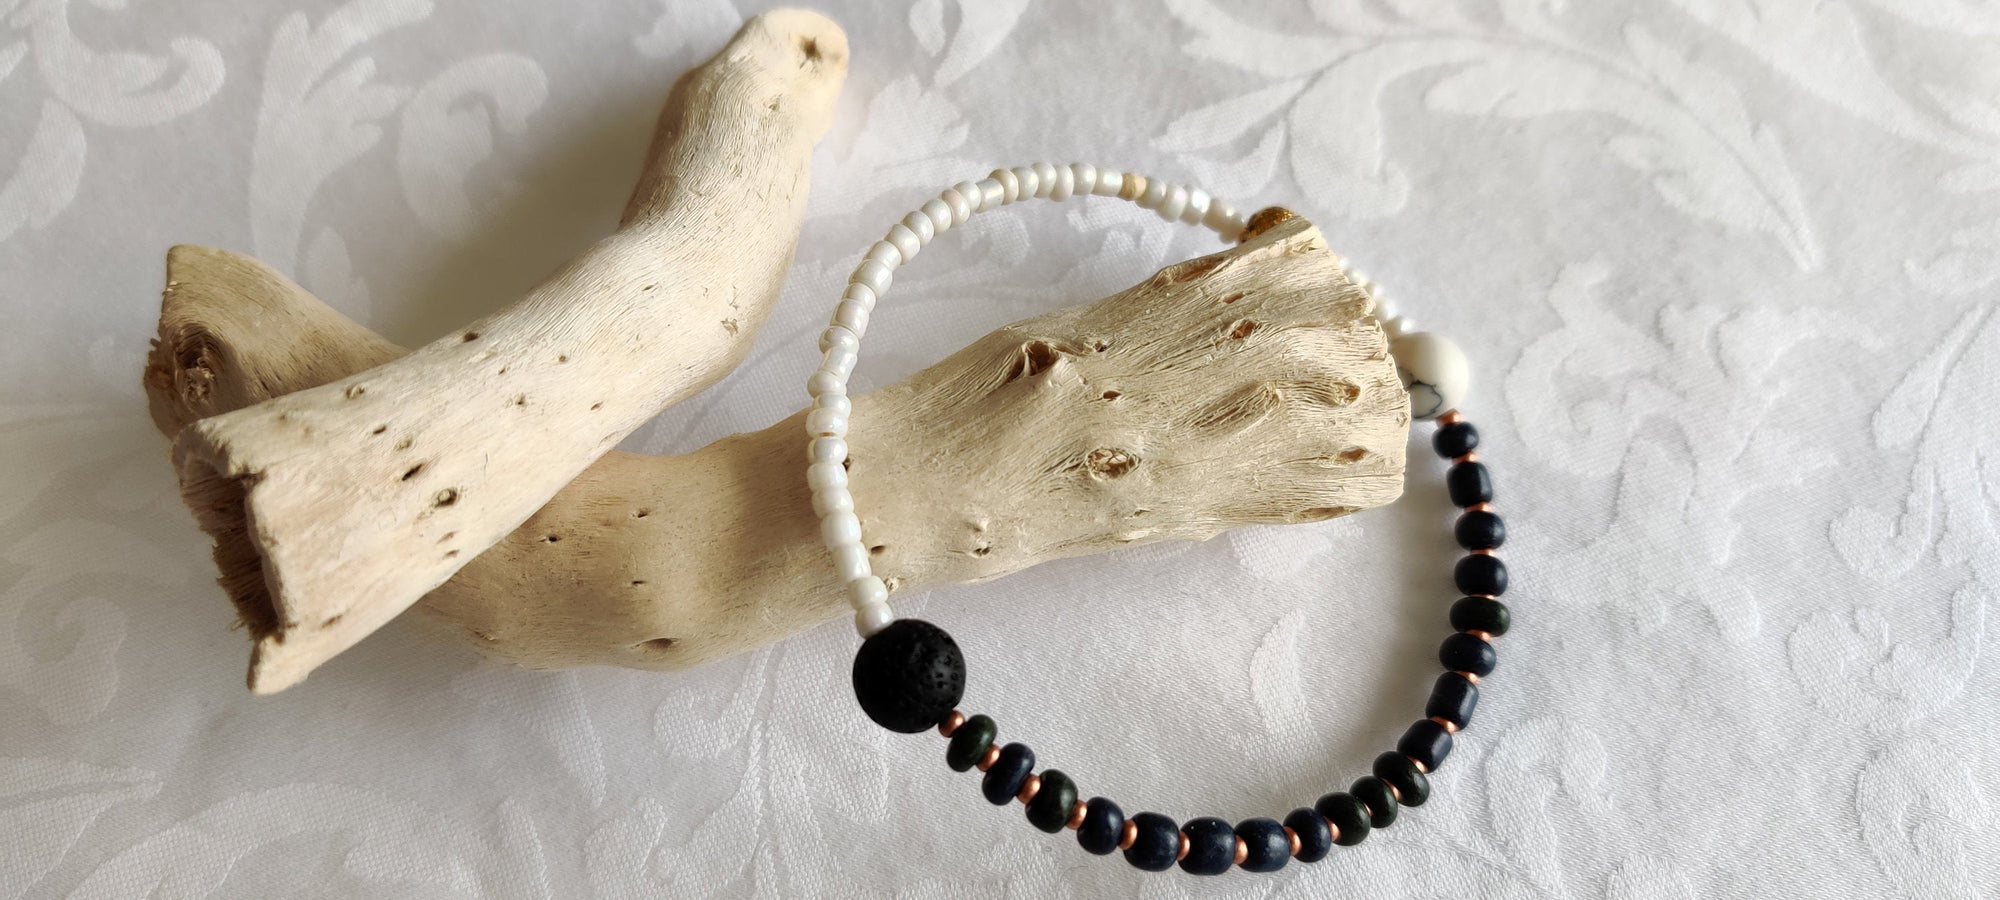 Gifts for her, Yin Yang, Healing beads, Howlite, Aromatherapy Lava bead, Wrap Bracelet